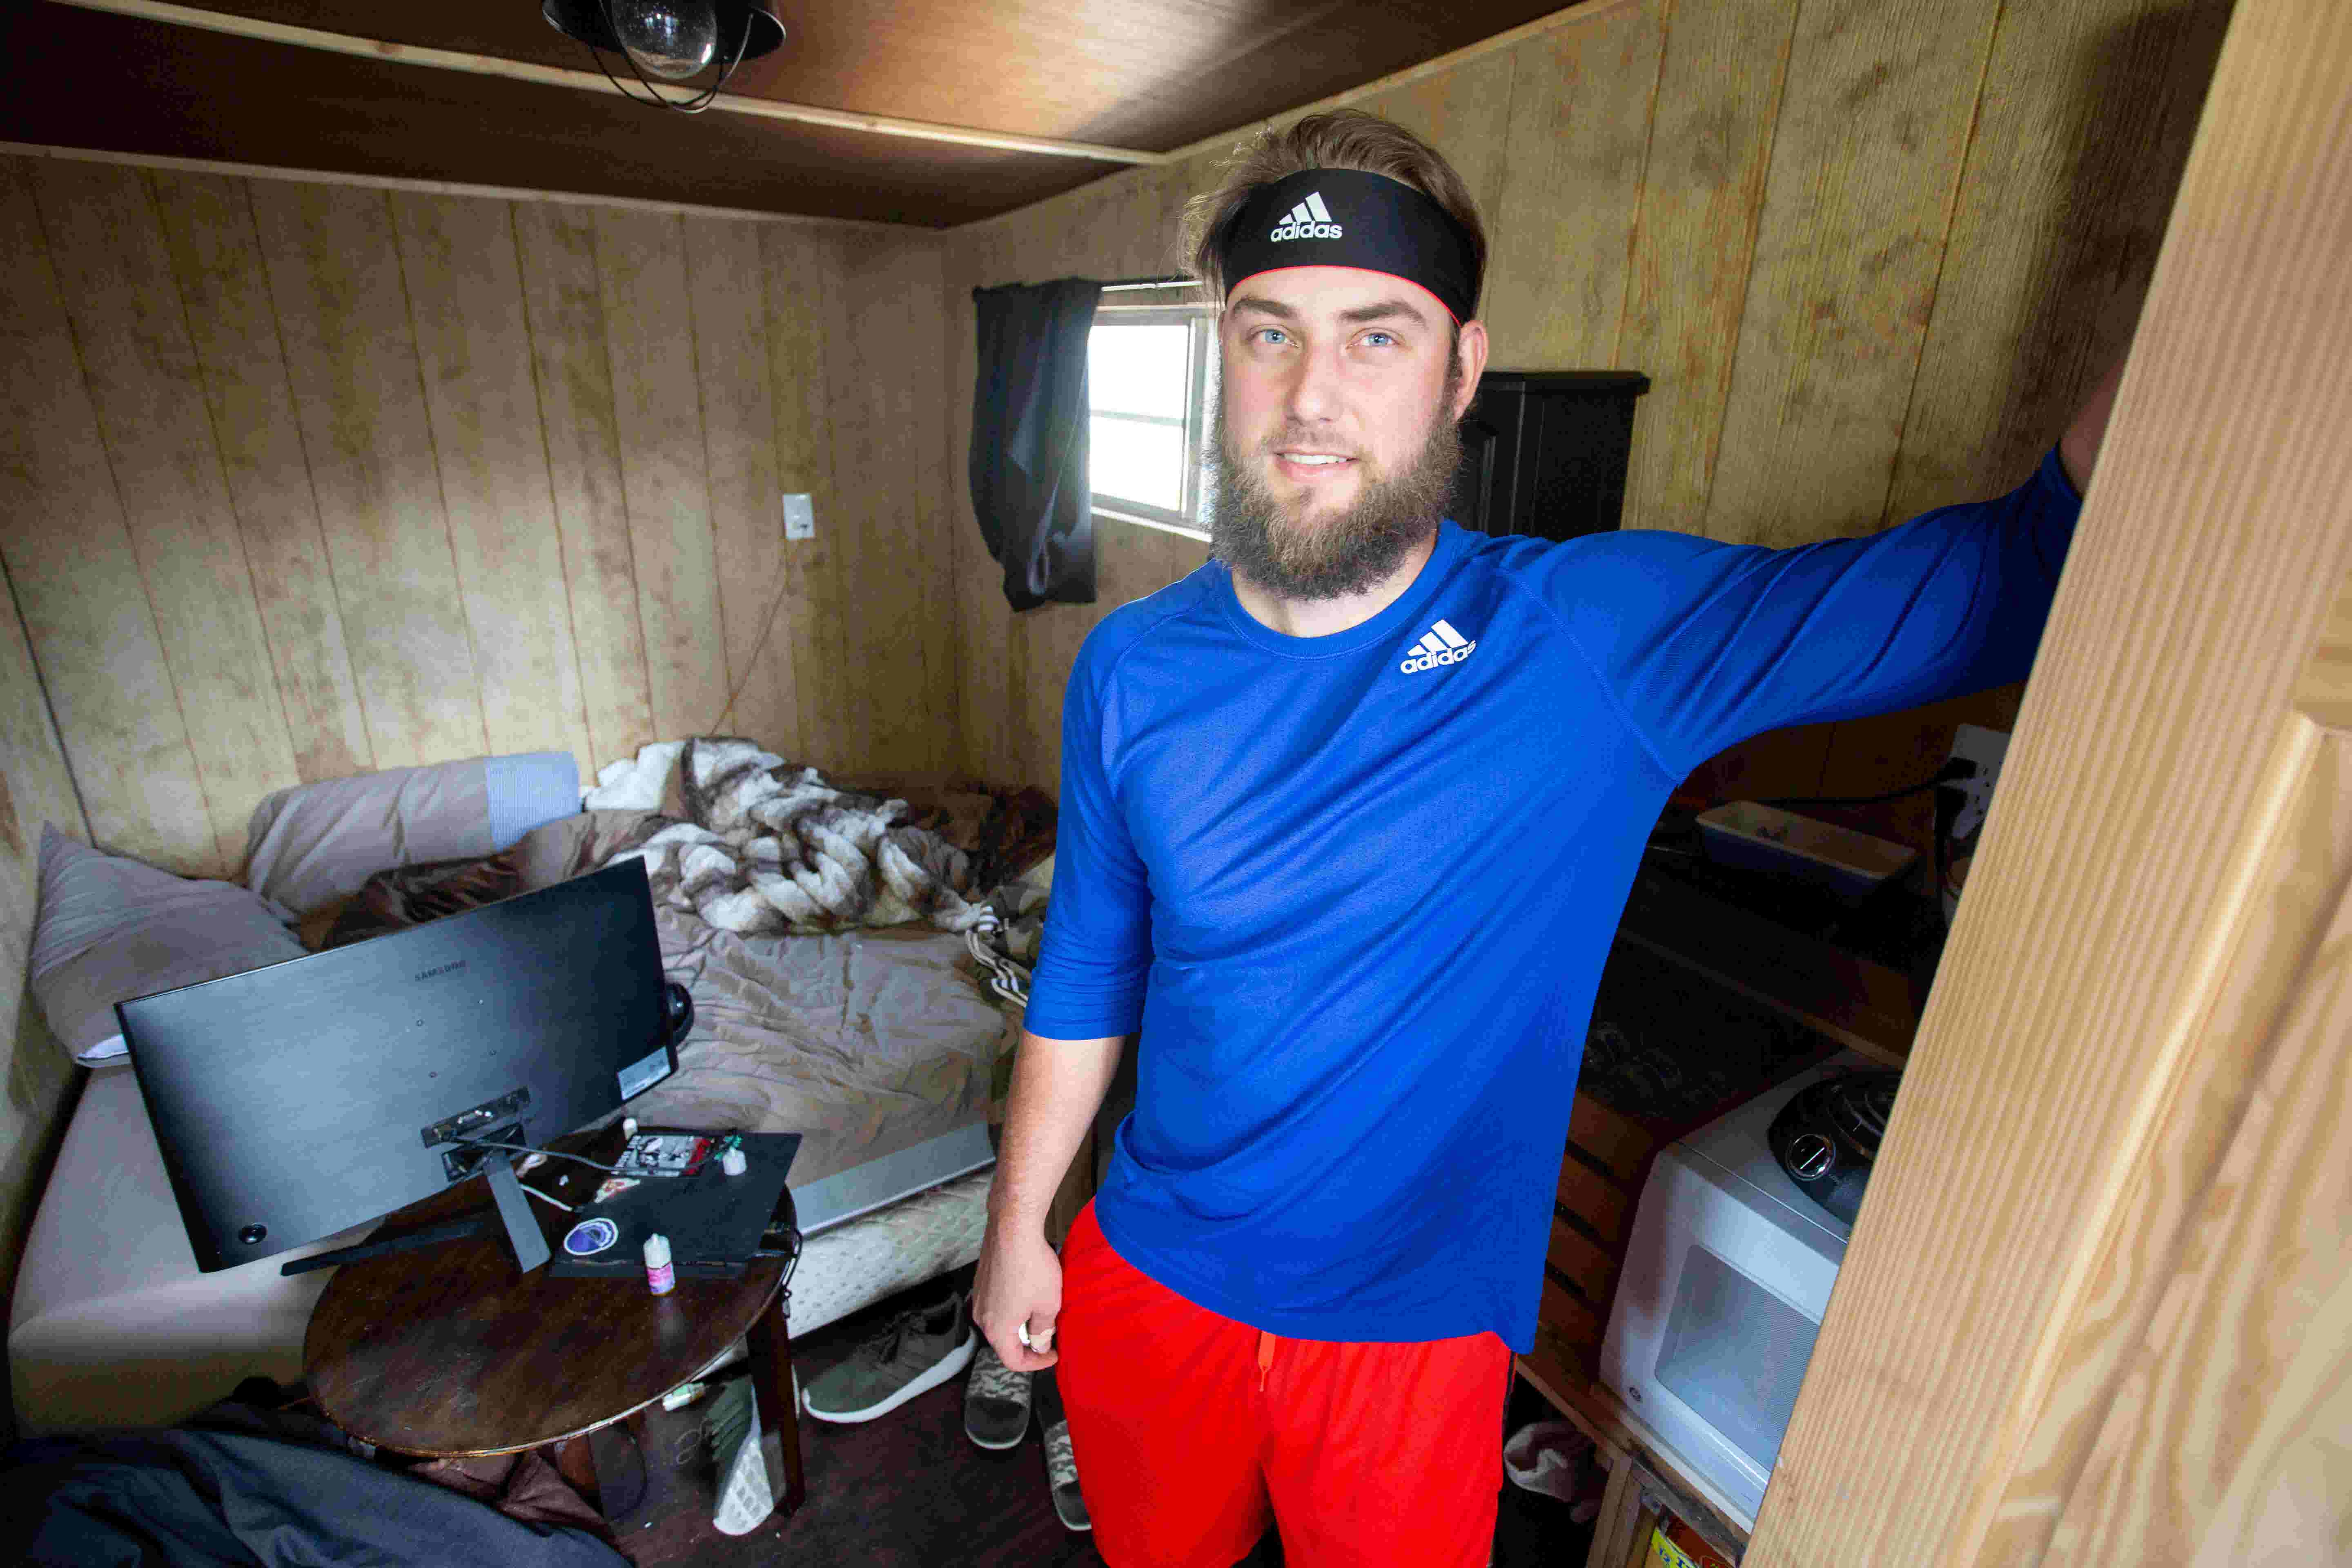 Iowa Cubs pitcher Trevor Clifton finds peace, quiet and affordability in his tiny house